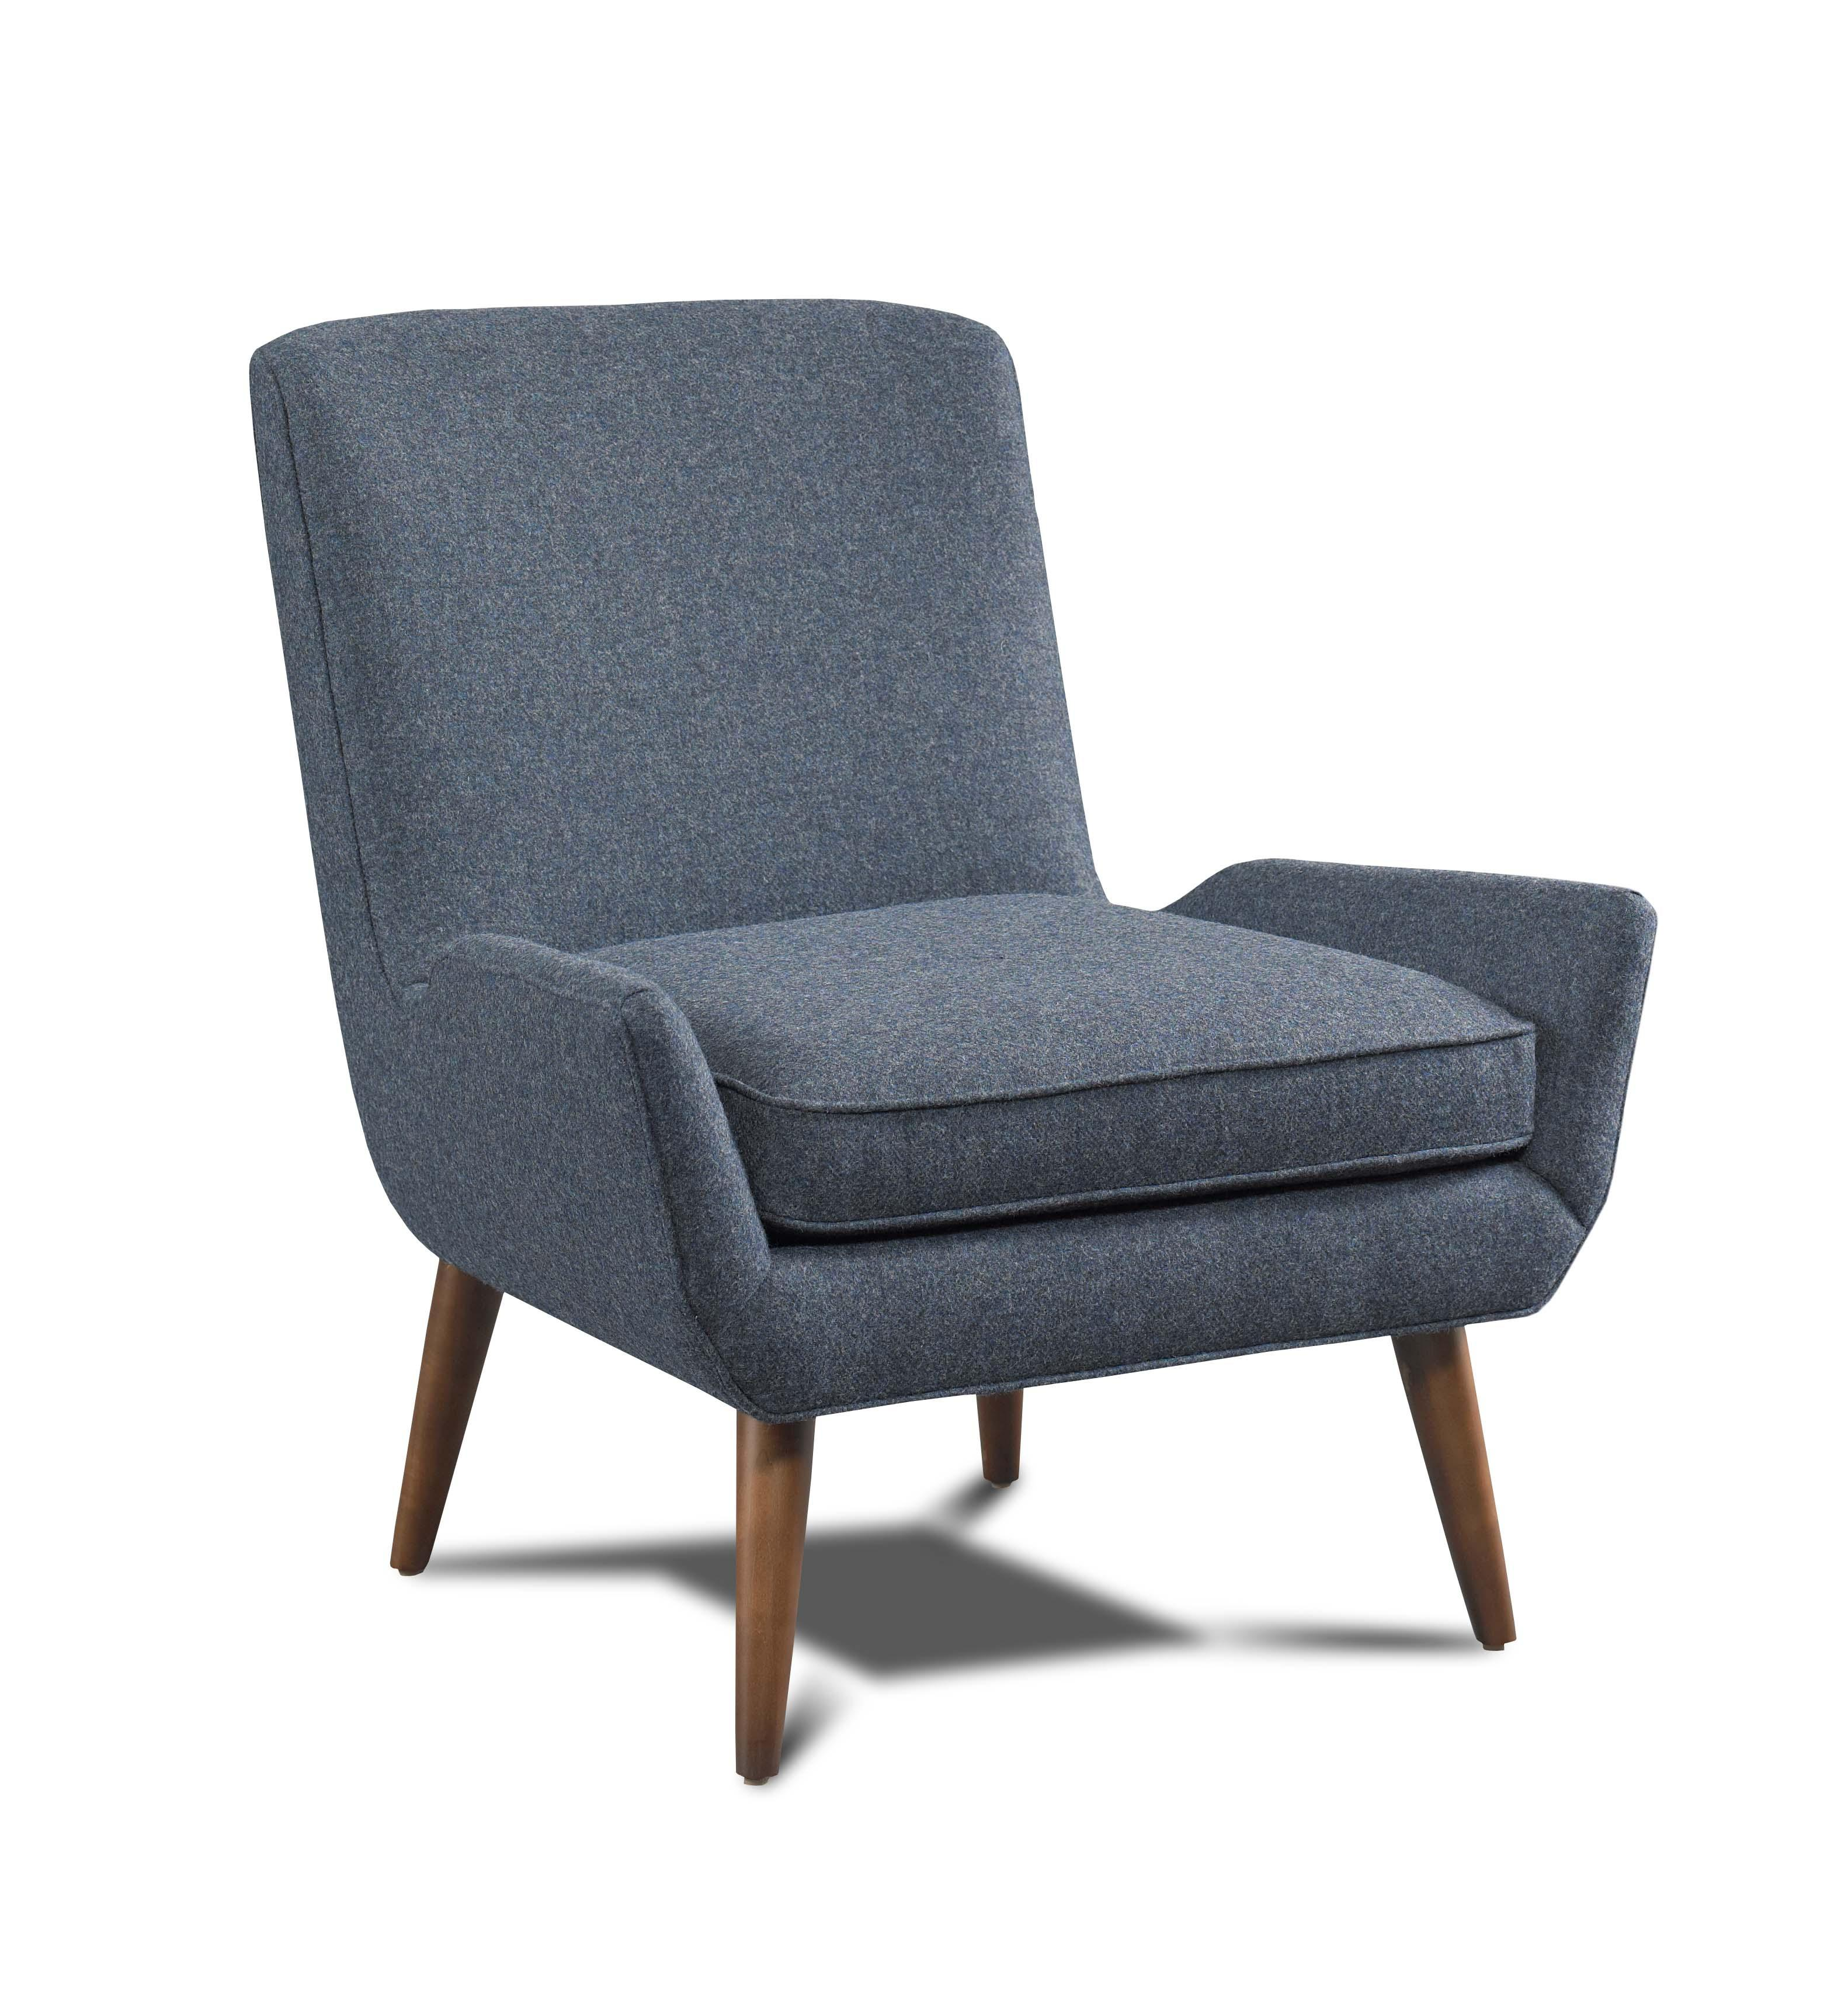 3235 c1 langley chair